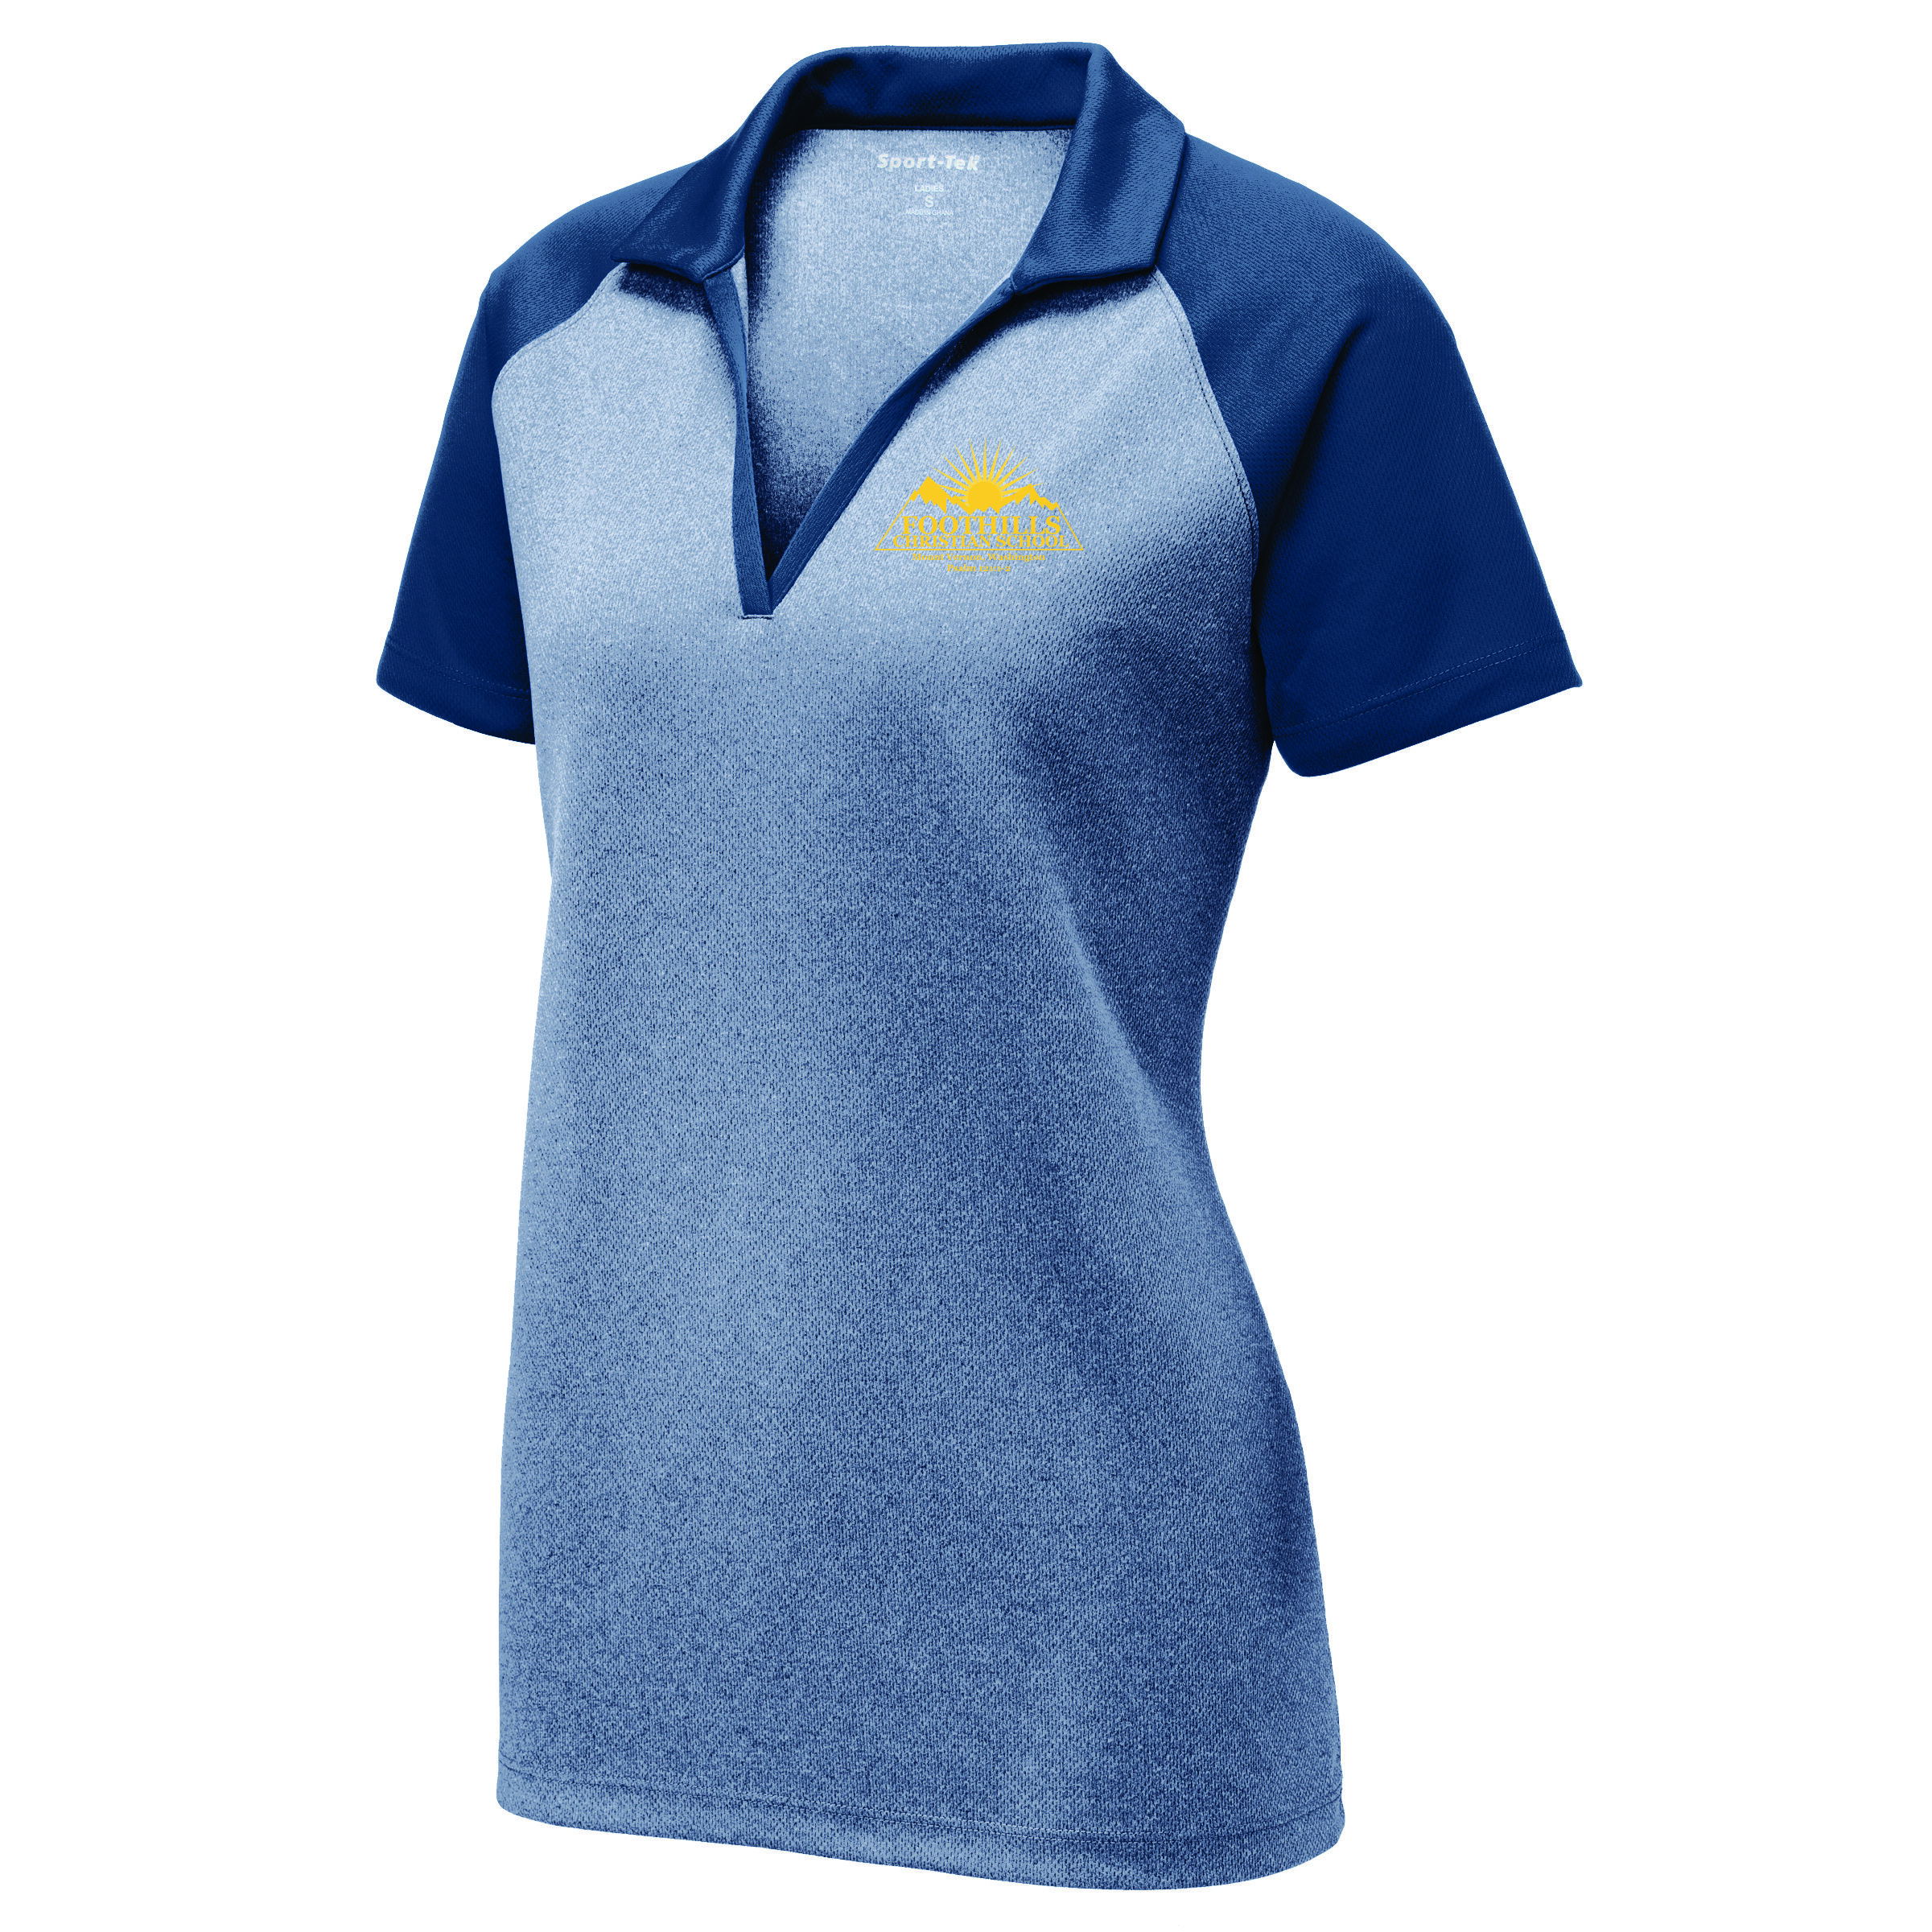 Foothills Christian Sport Tek Ladies Posicharge Racermesh Raglan Heather Block Polo Hats Off A fun update on the classic rugby shirt levi's® iconic. foothills christian sport tek ladies posicharge racermesh raglan heather block polo hats off